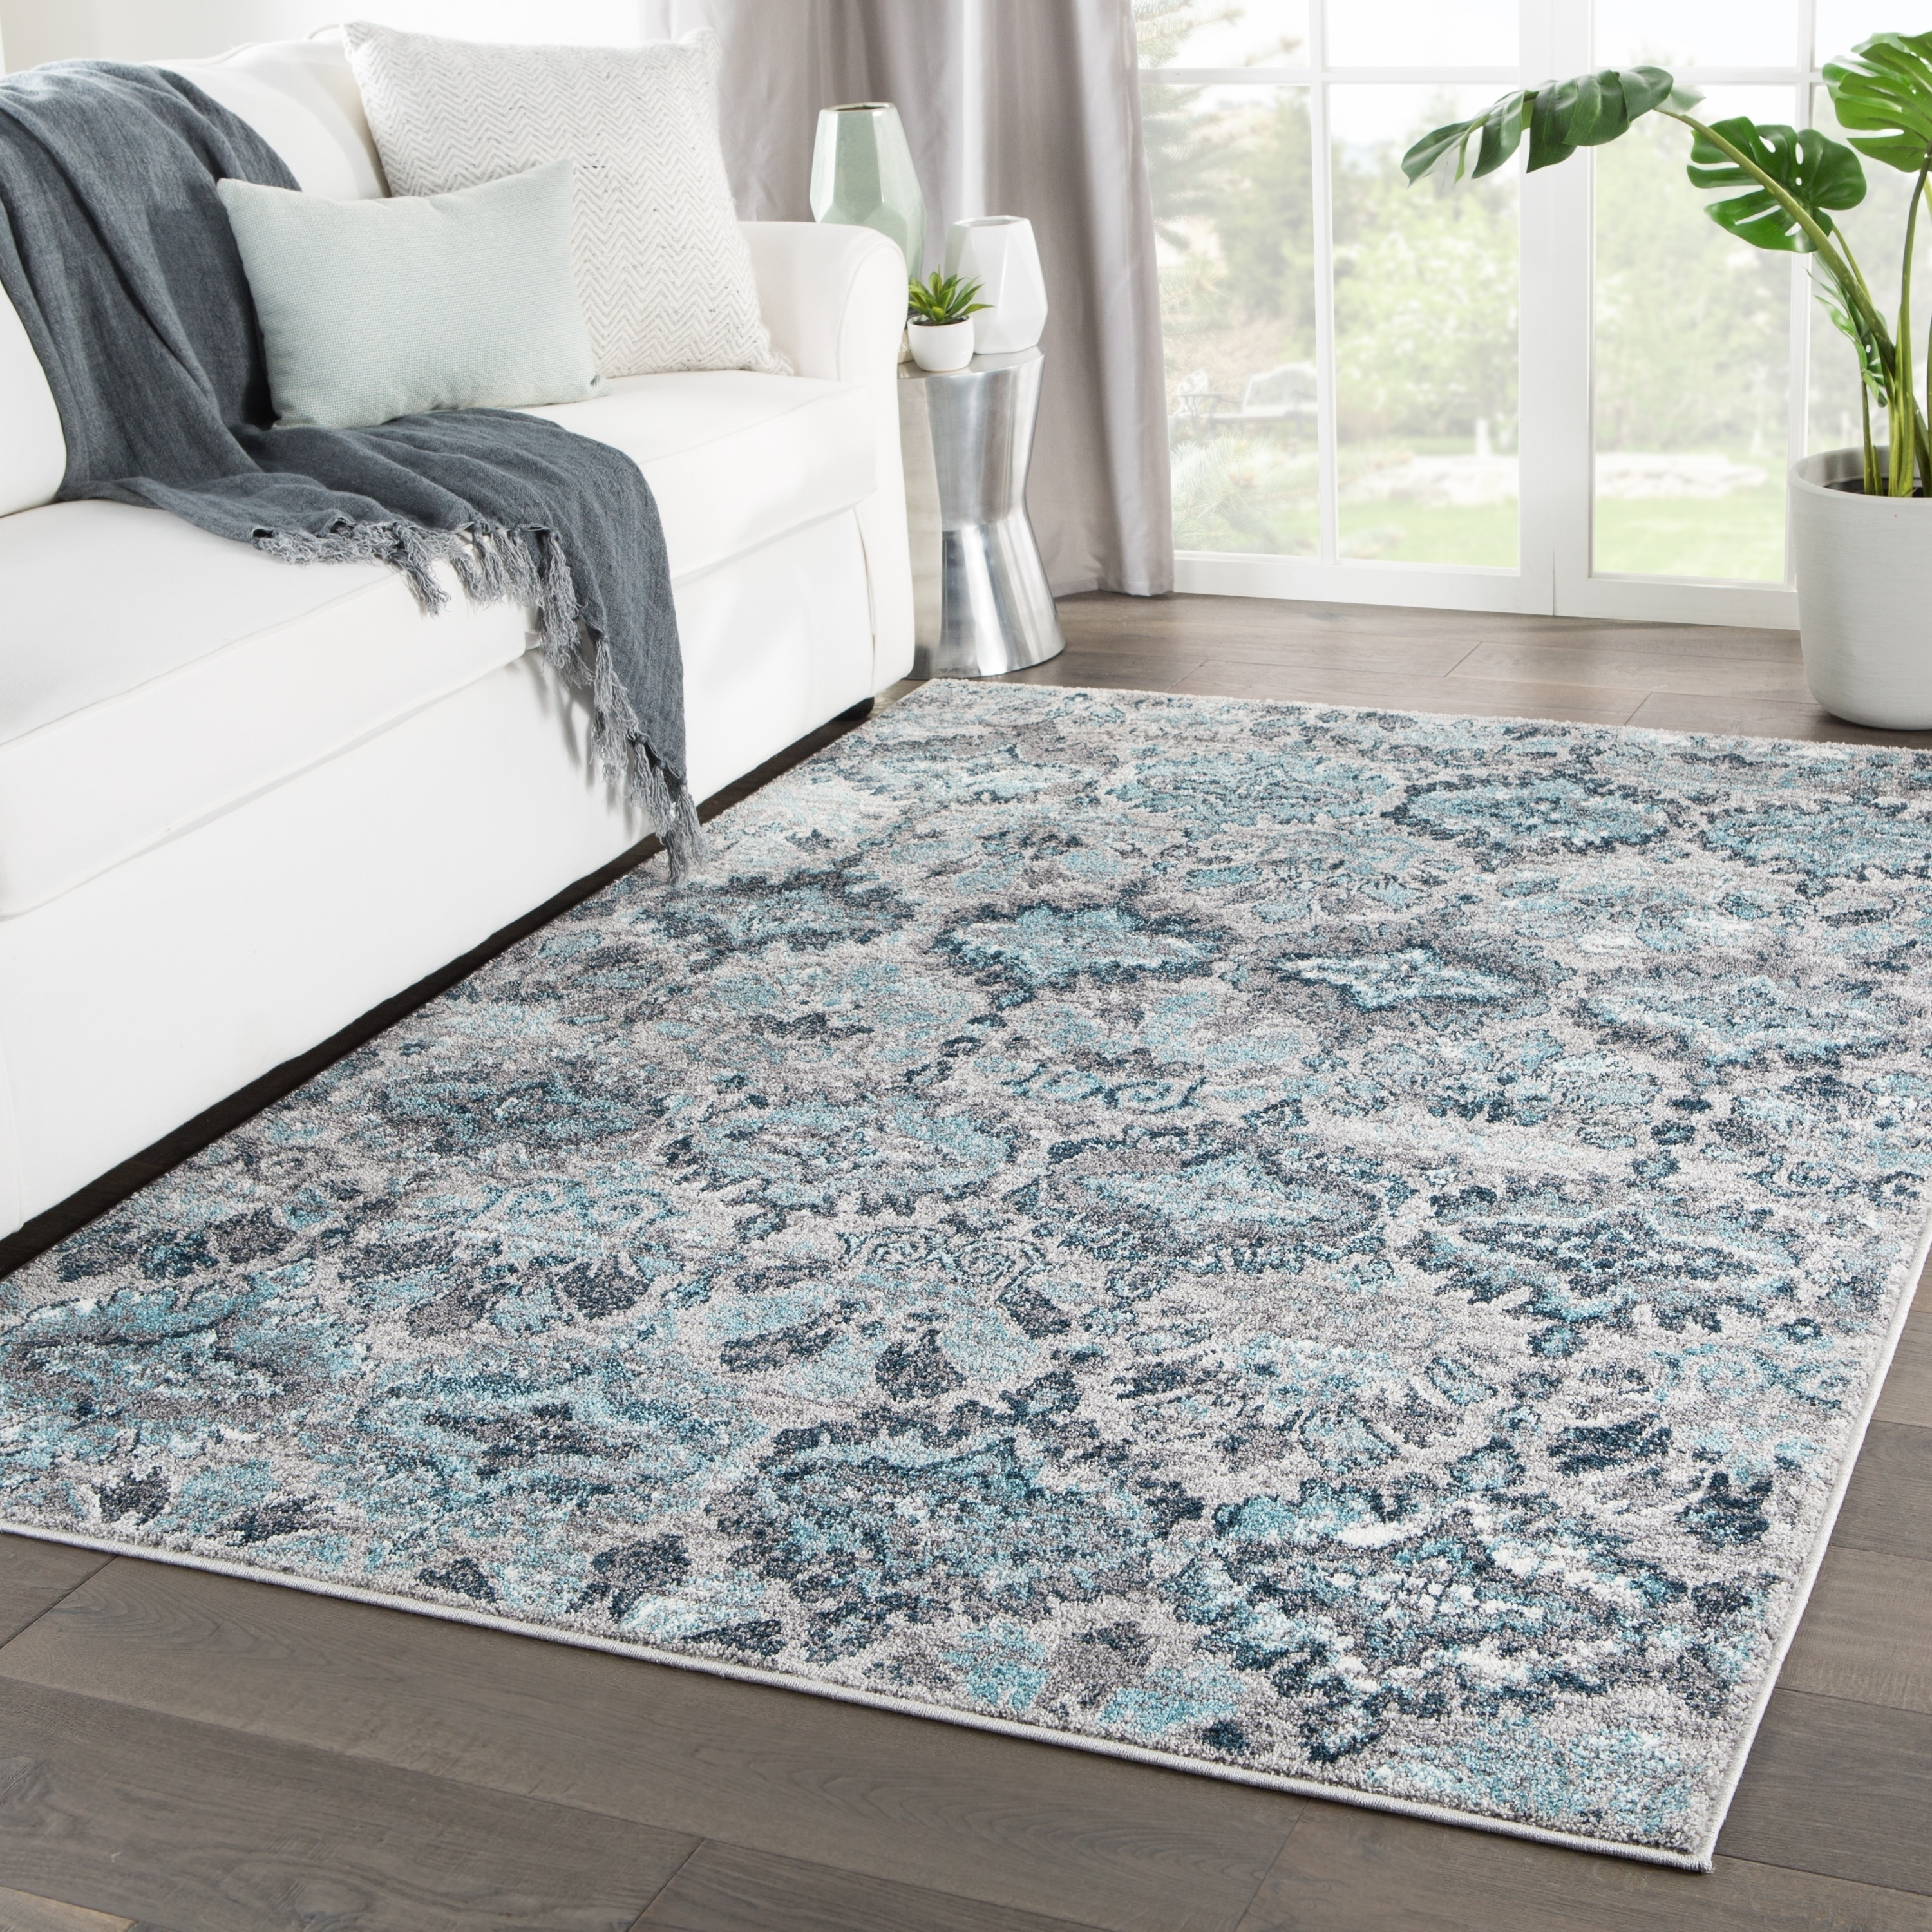 Picture of: Shop Souta Ikat Gray Turquoise Area Rug 8 10 X12 On Sale Free Shipping Today Overstock 23554251